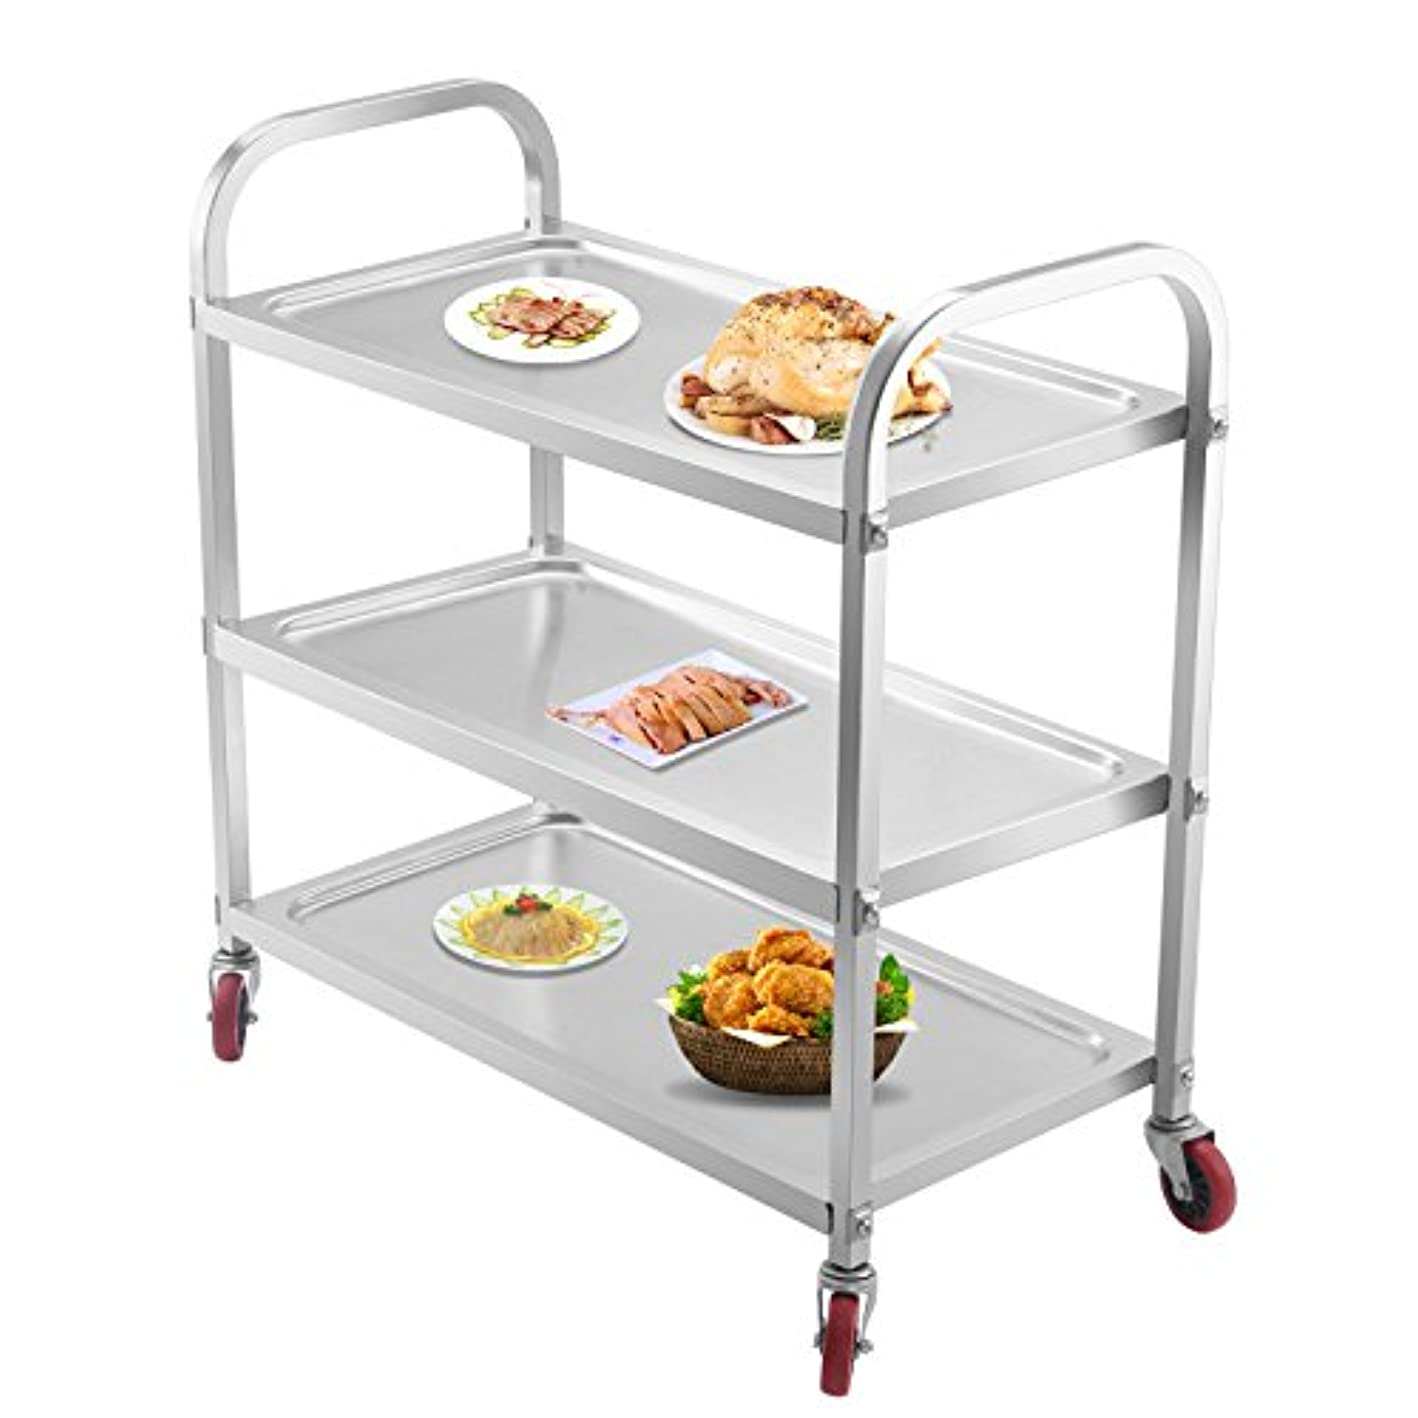 Superland 3 Shelf Utility Cart 264Lbs Stainless Steel Cart with Wheels Commercial Bus Cart for Kitchen Commercial Hotel Restaurant Dining Area Utility Serving (3 Shelf)